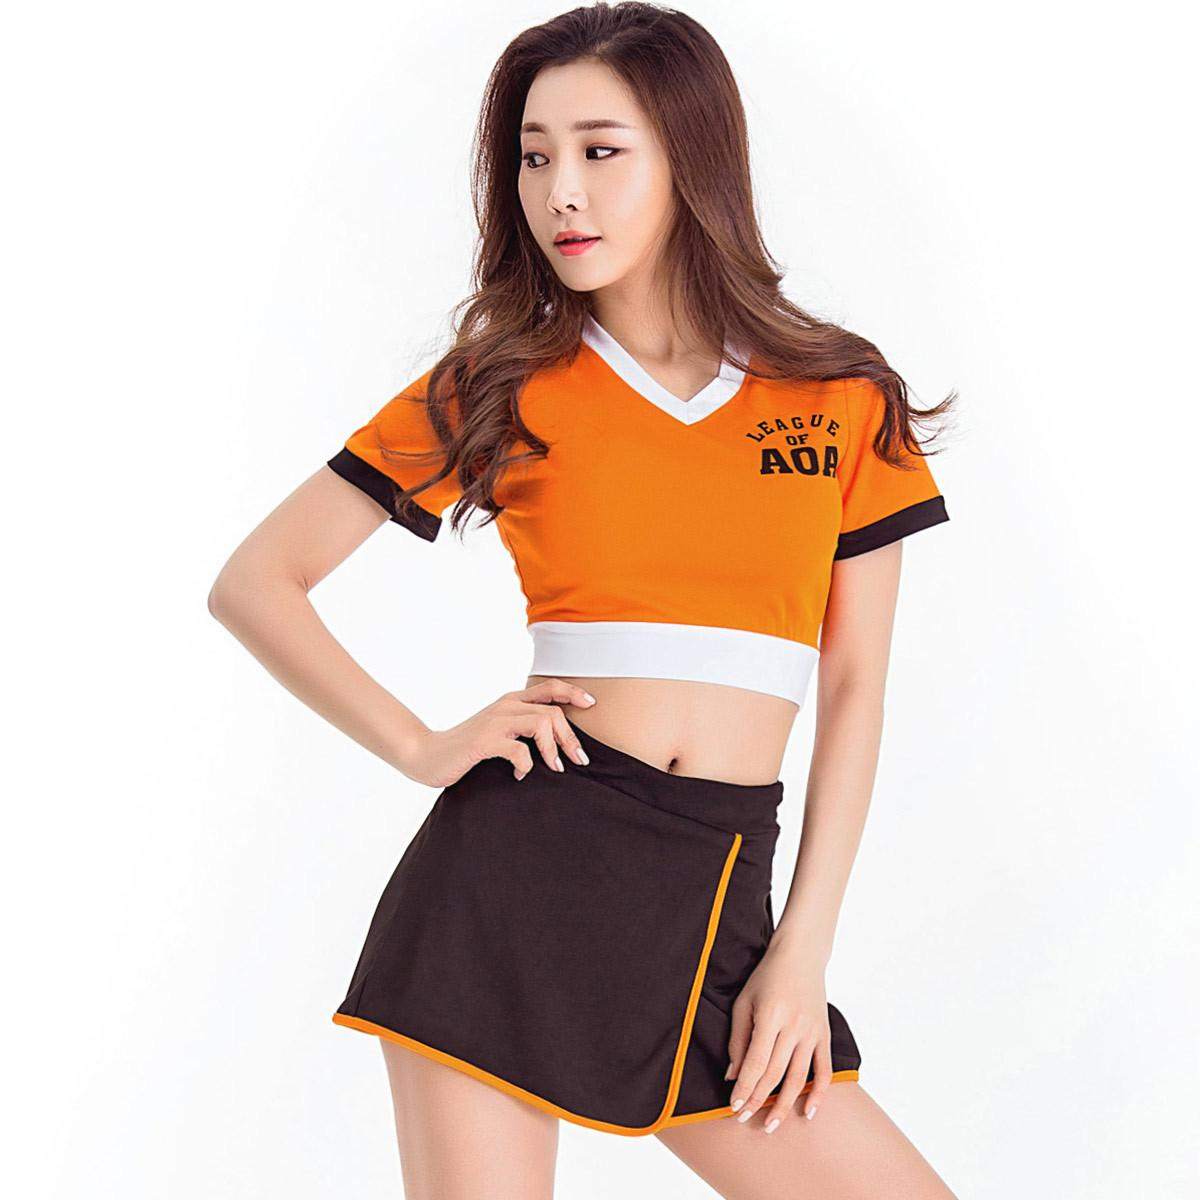 2018 AOA Fans Cheerleader Costume Nightclub DS Costume Sexy Korea Style Cosplay Uniform Party Outfit Tops with Skirt 8346